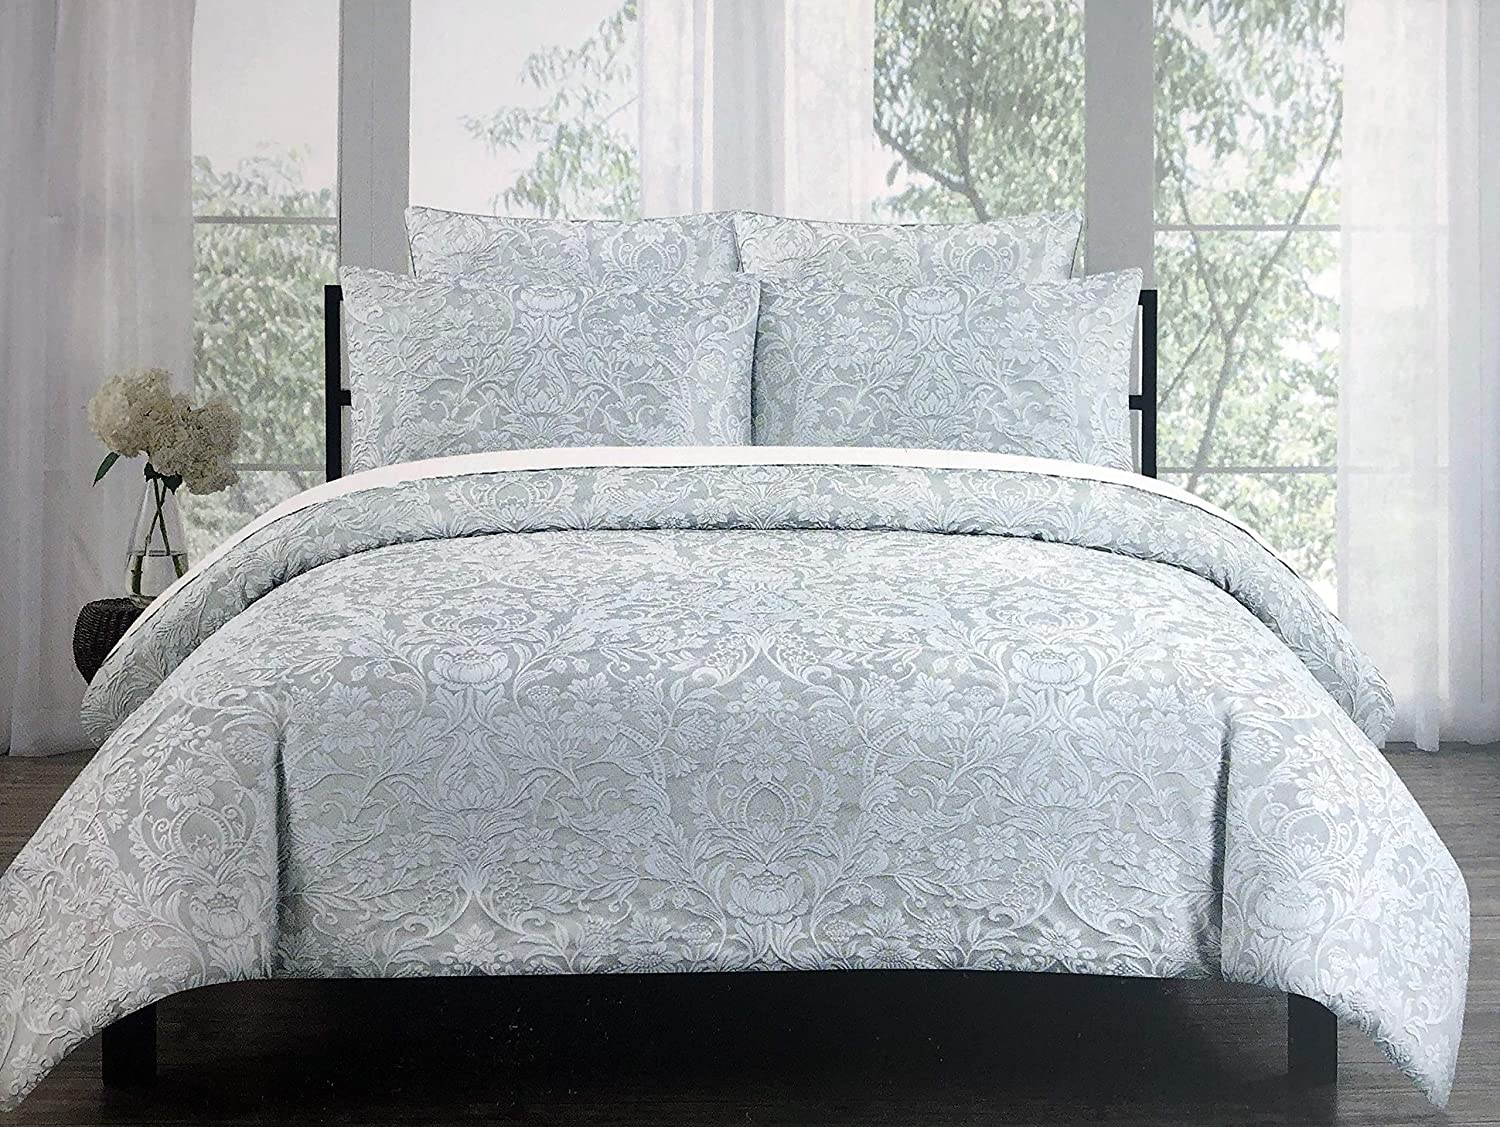 Tahari Home 3pc Duvet Cover Set Raised Embroidered Floral Damask Pattern Birds in White Thread on Light Gray - Charleston (King)